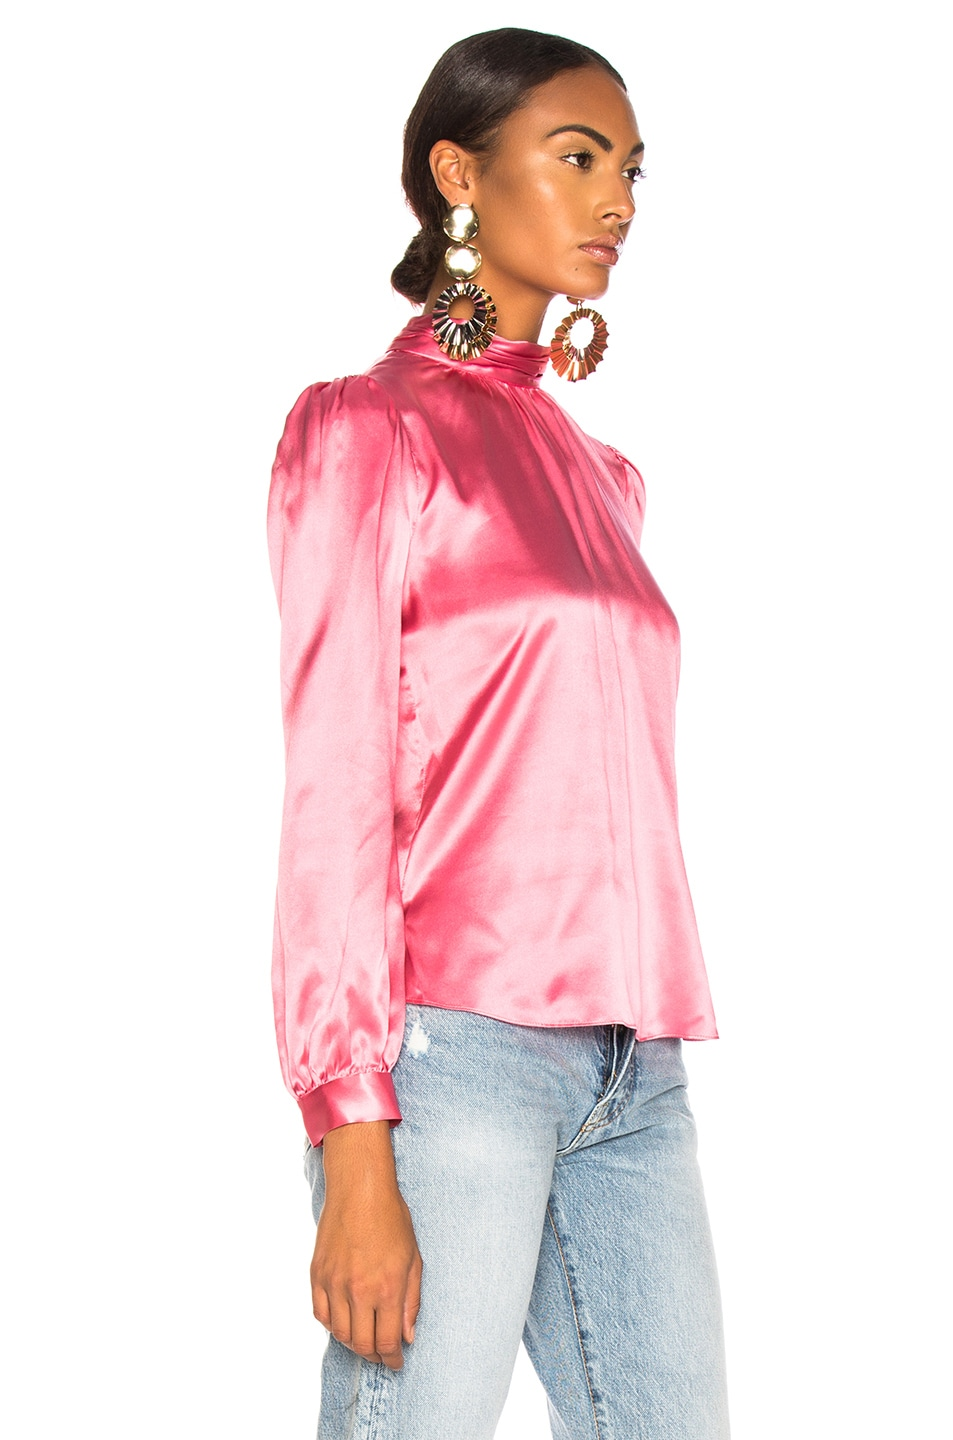 e2b0d846f80a9 Image 3 of Veronica Beard Chilton Blouse in Pink